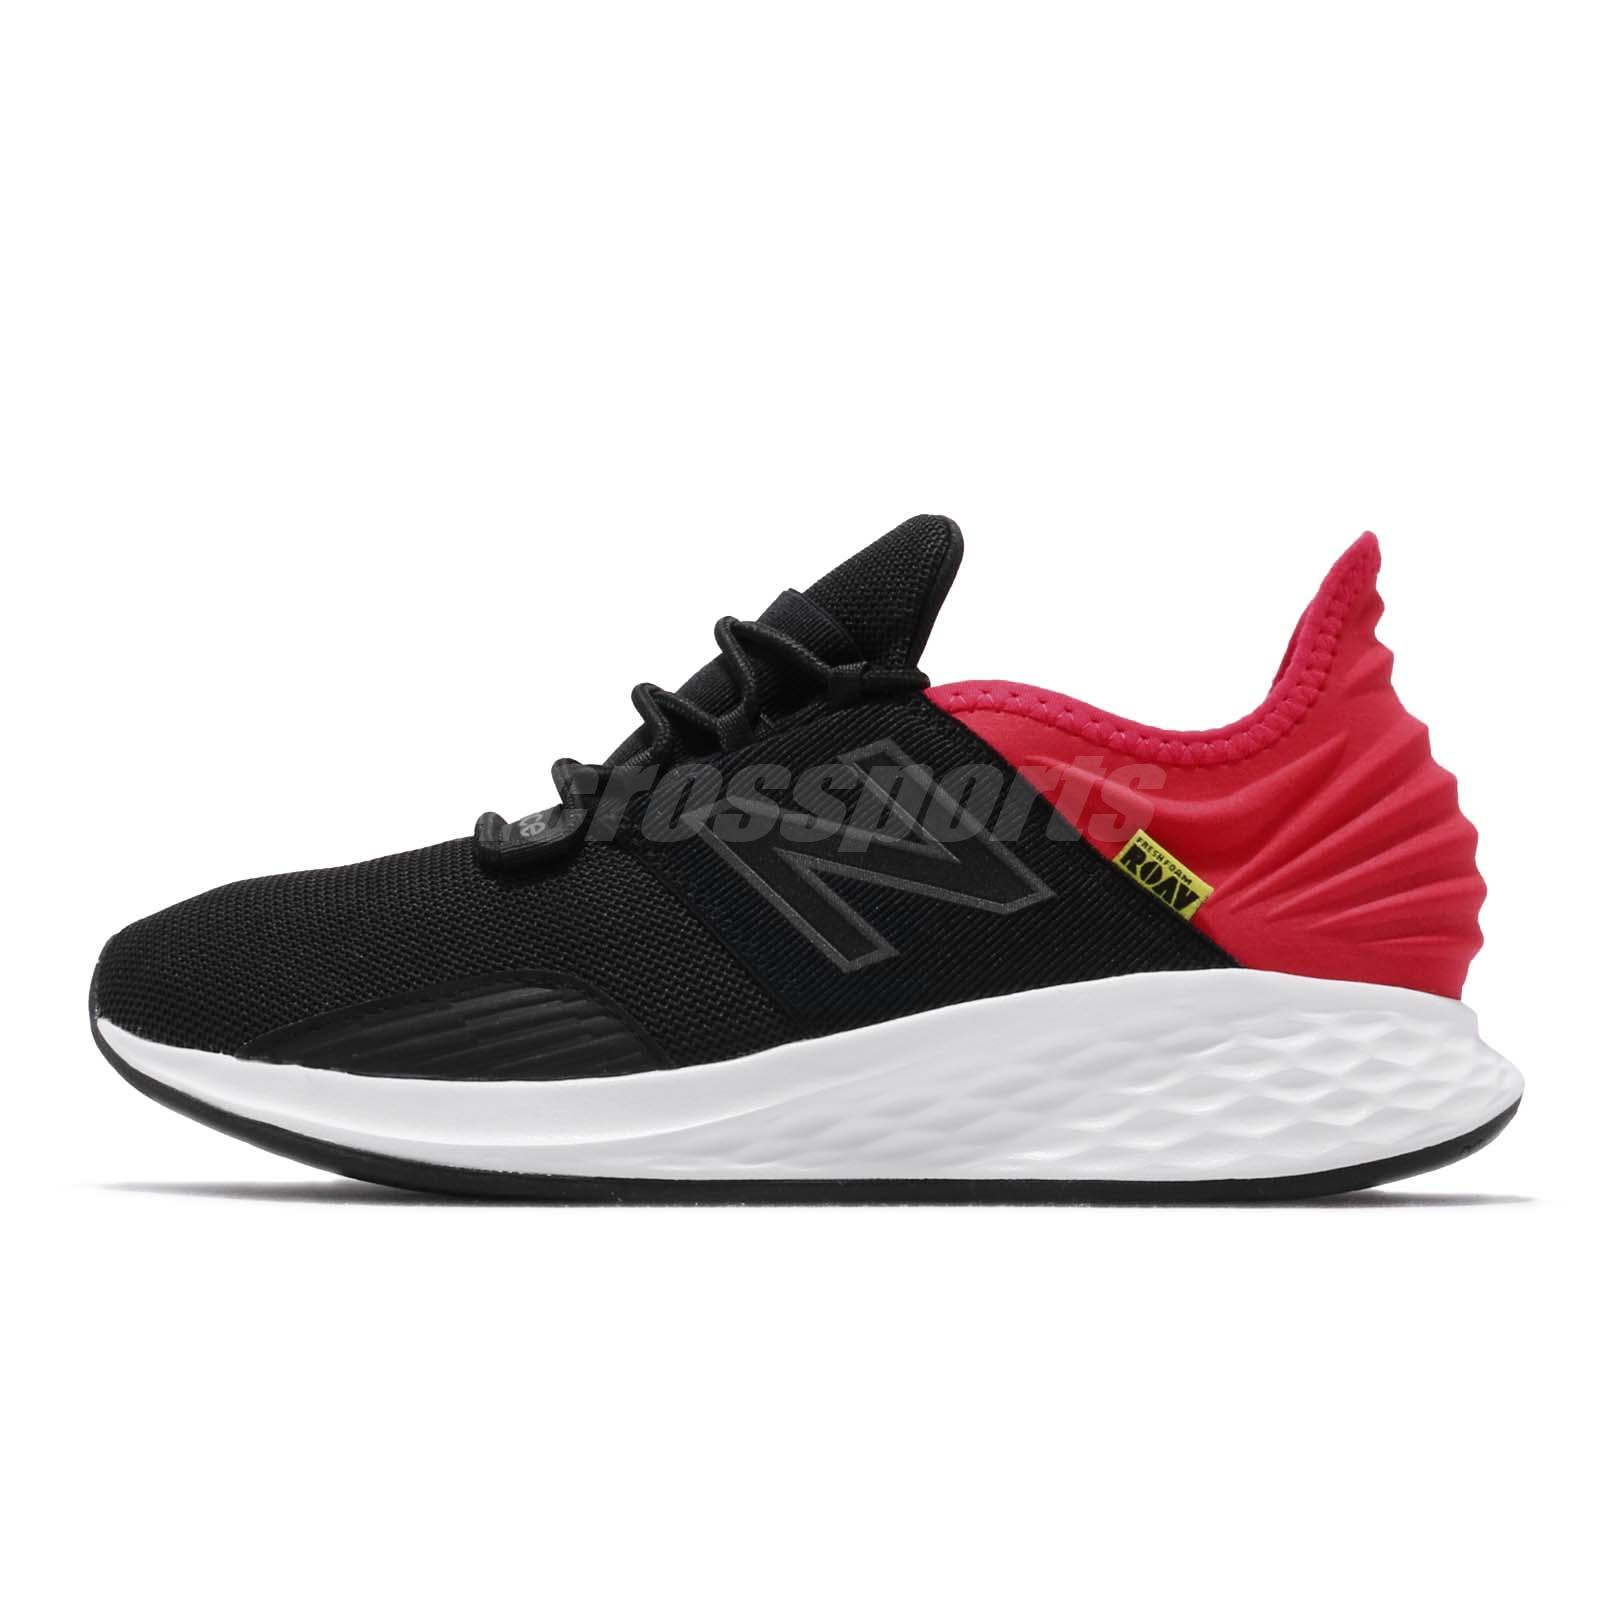 Red NB Mens Running Shoes MROAVLE